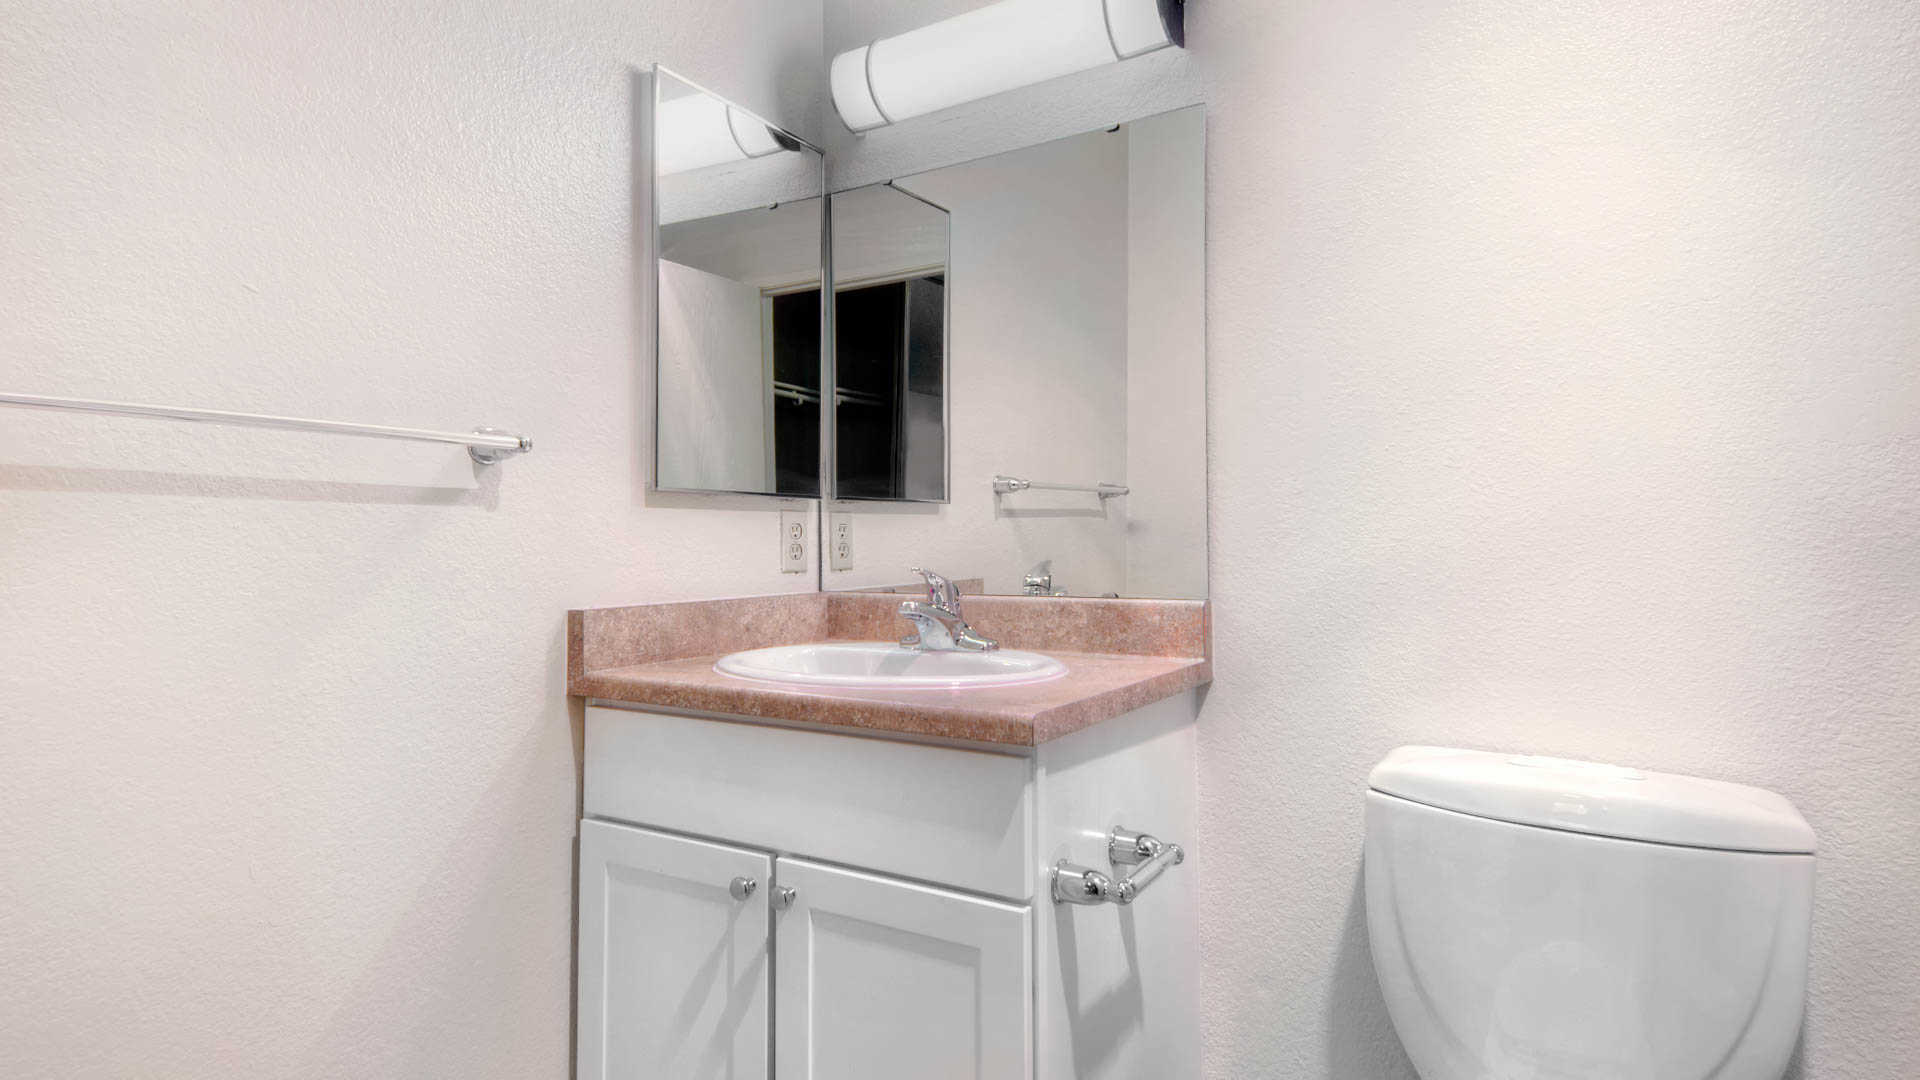 Briarwood Bathroom Cabinets Briarwood Apartments Reviews In Sunnyvale 180 Pasito Terrace